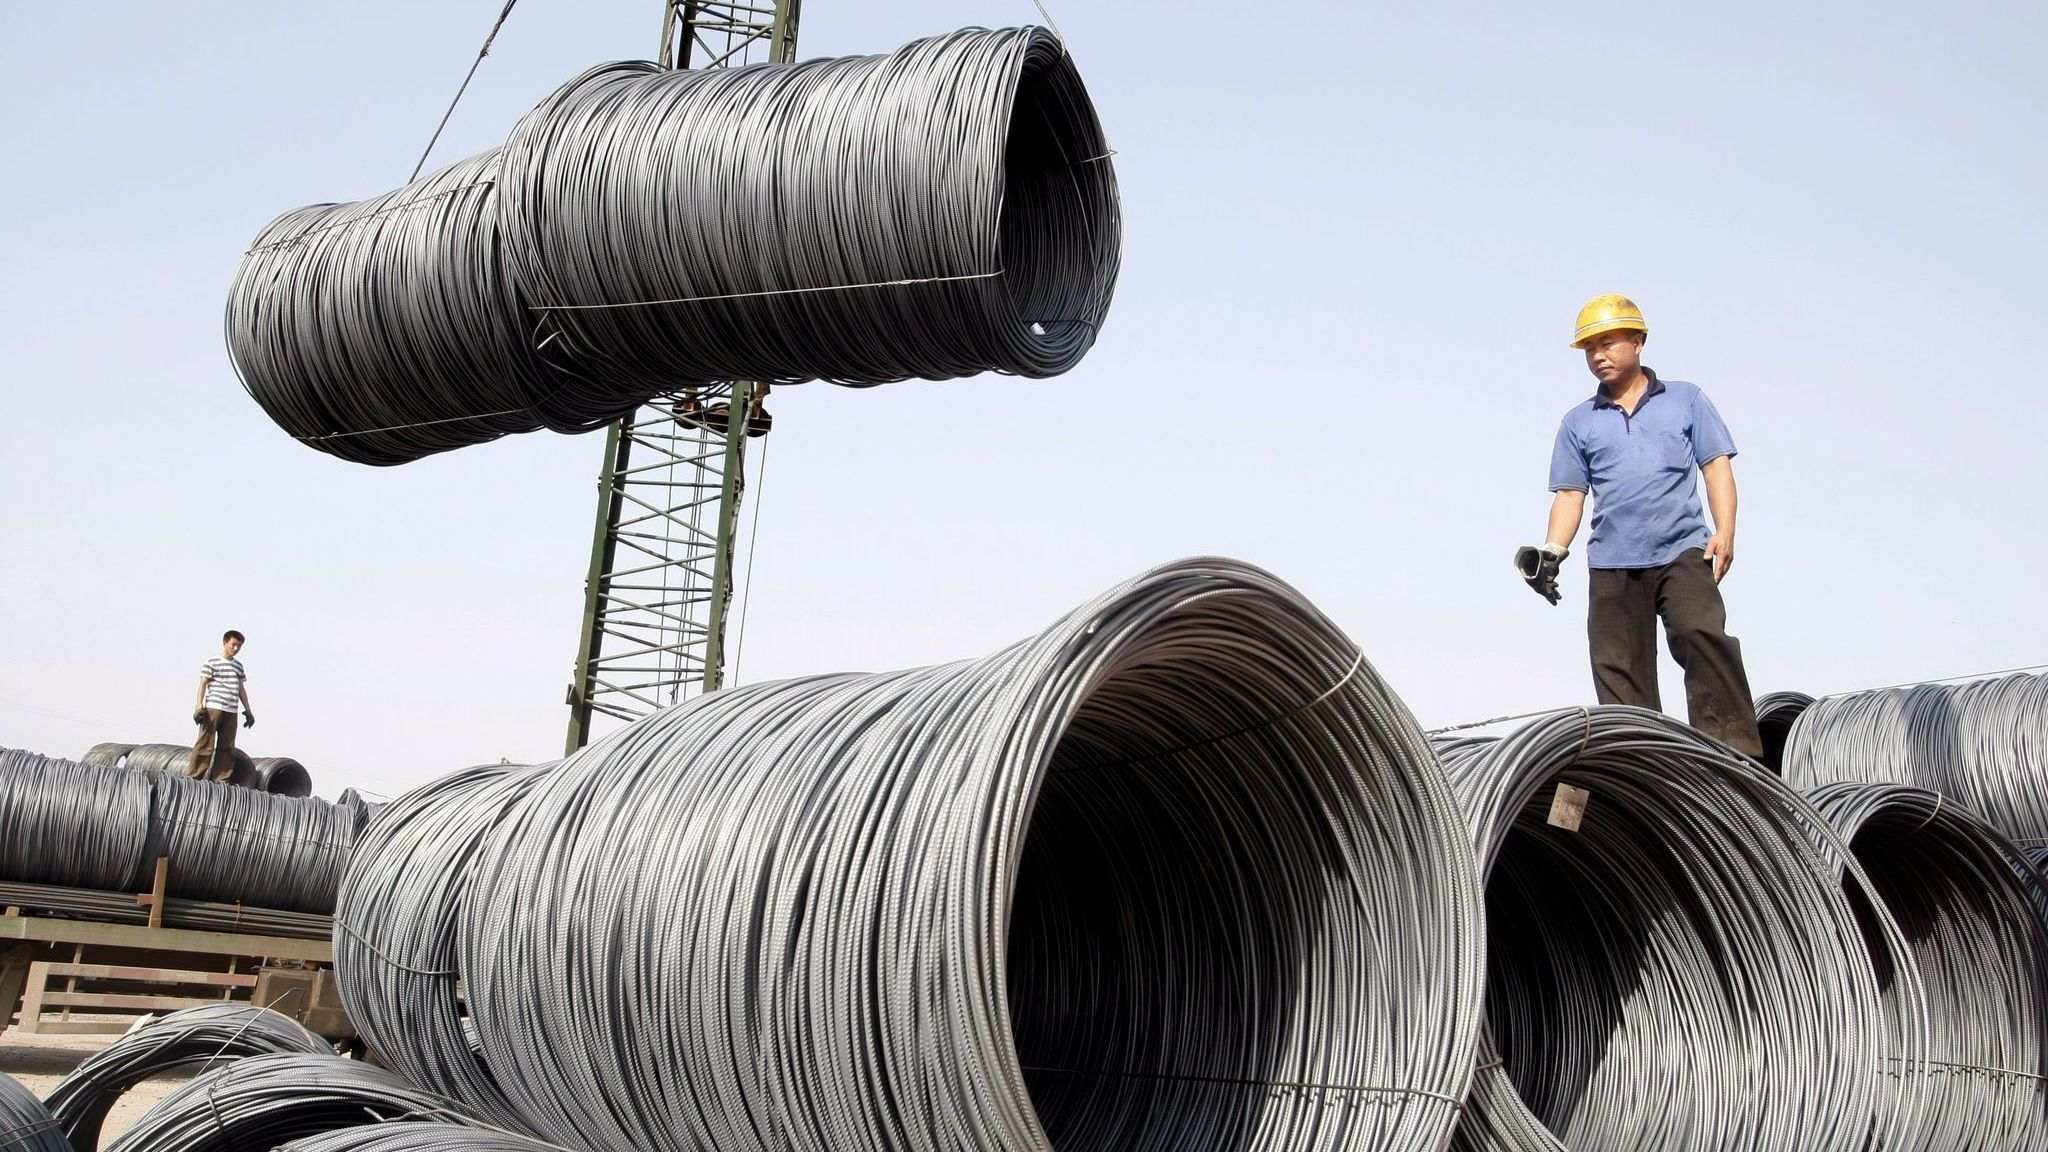 Workers transport steel cables at a steel yard in Beijing, China.